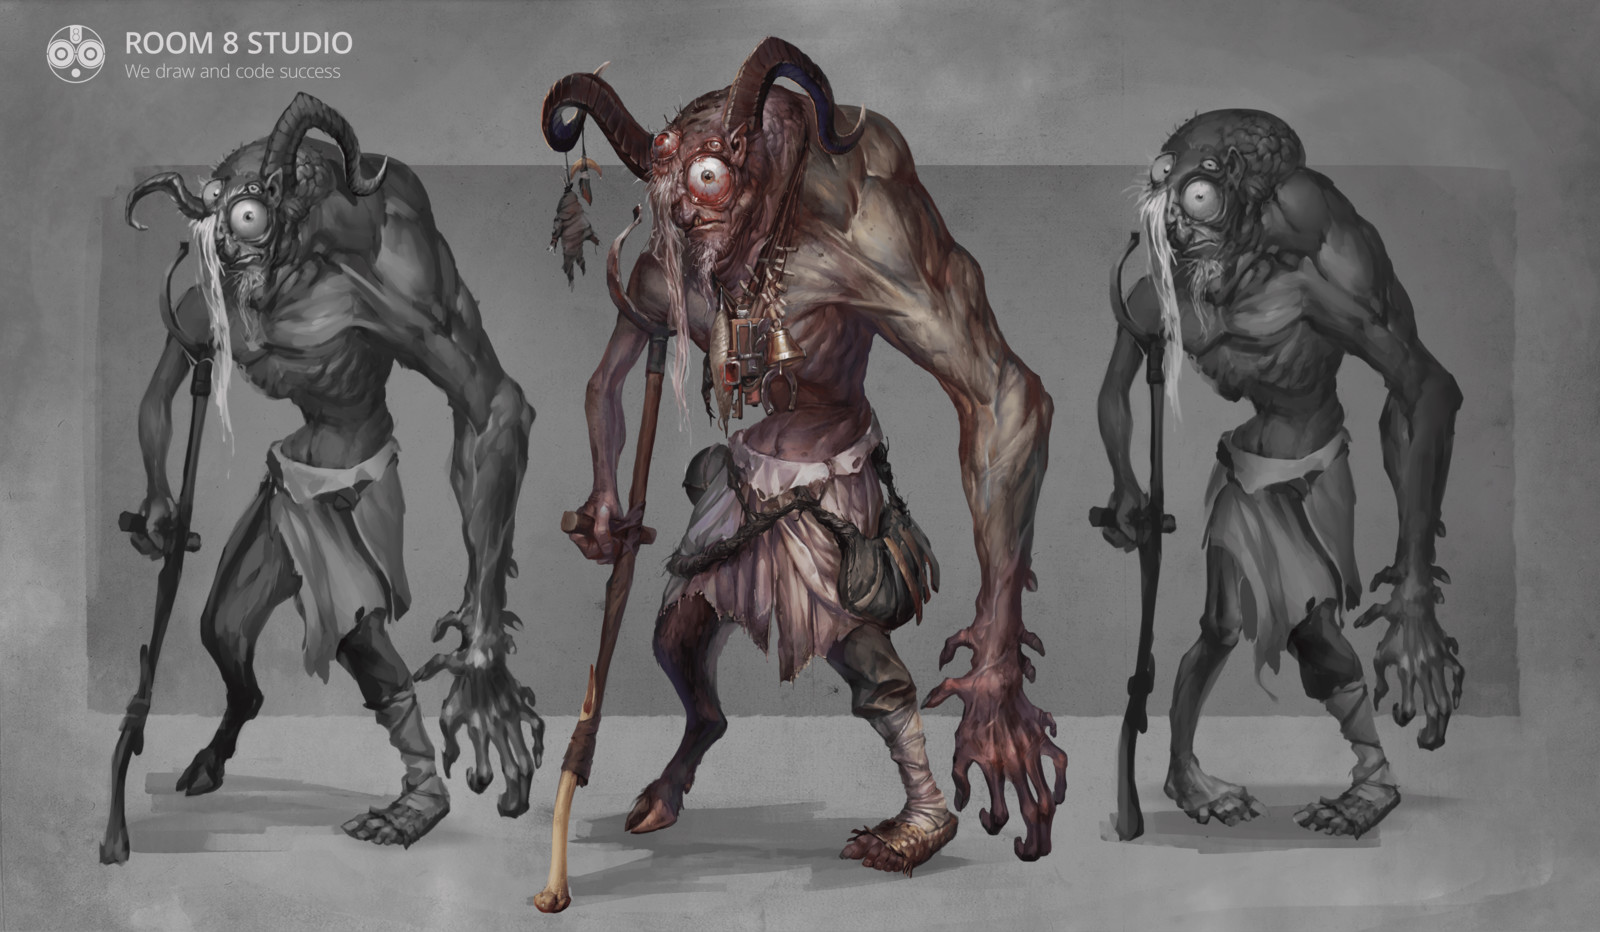 Verlioka: Fantasy Creature from Witcher Universe